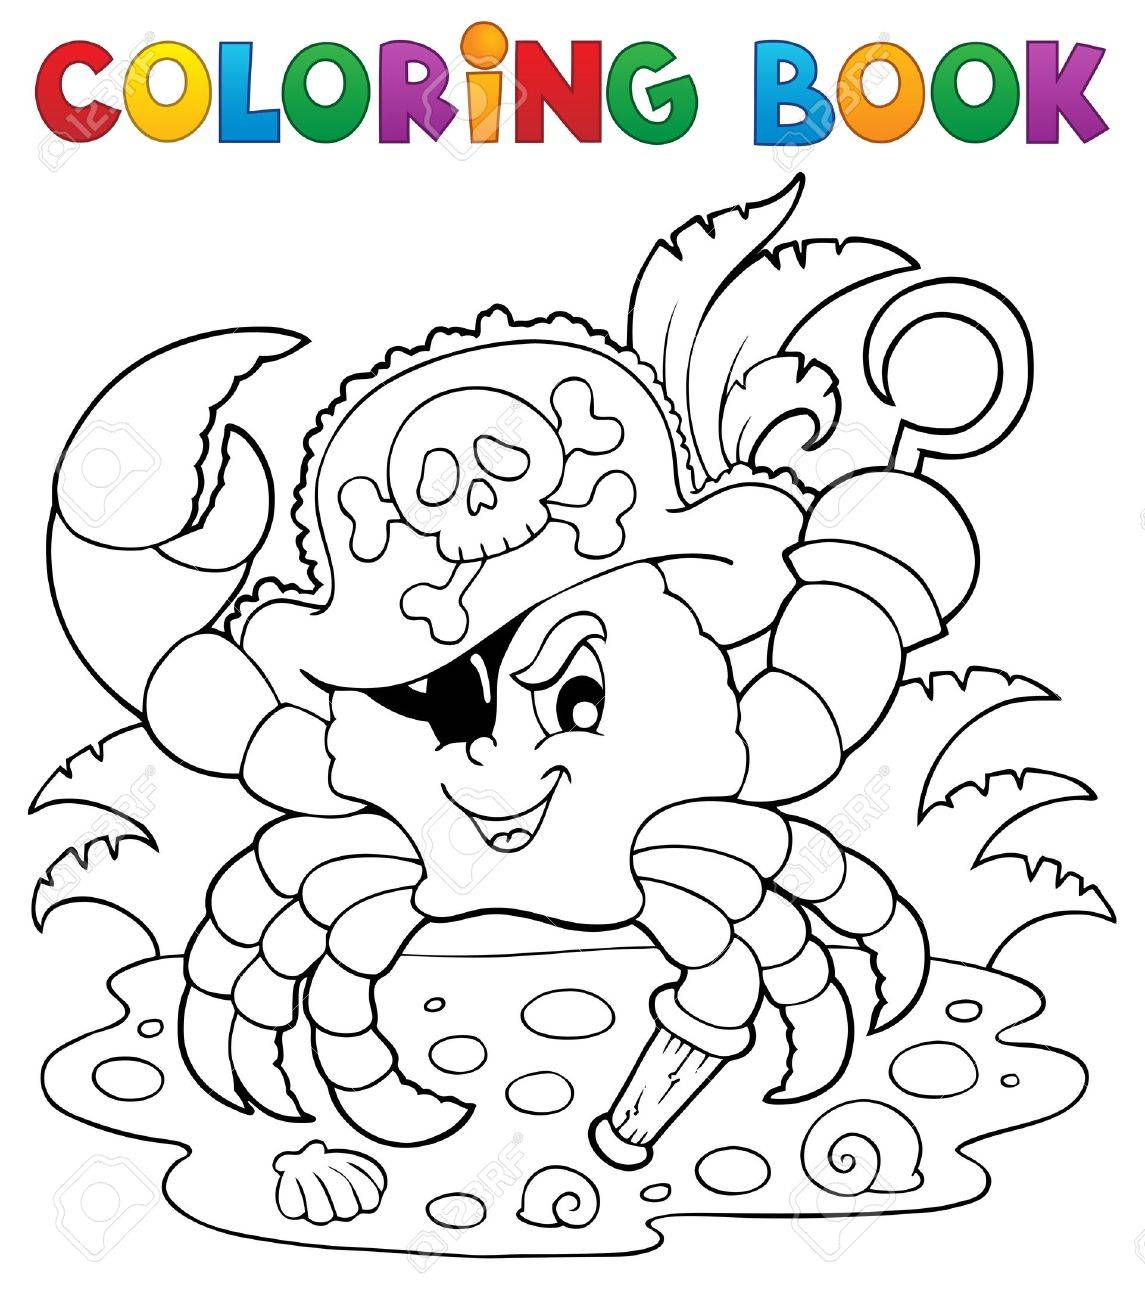 Coloring book with pirate crab - vector illustration Stock Vector - 18559618